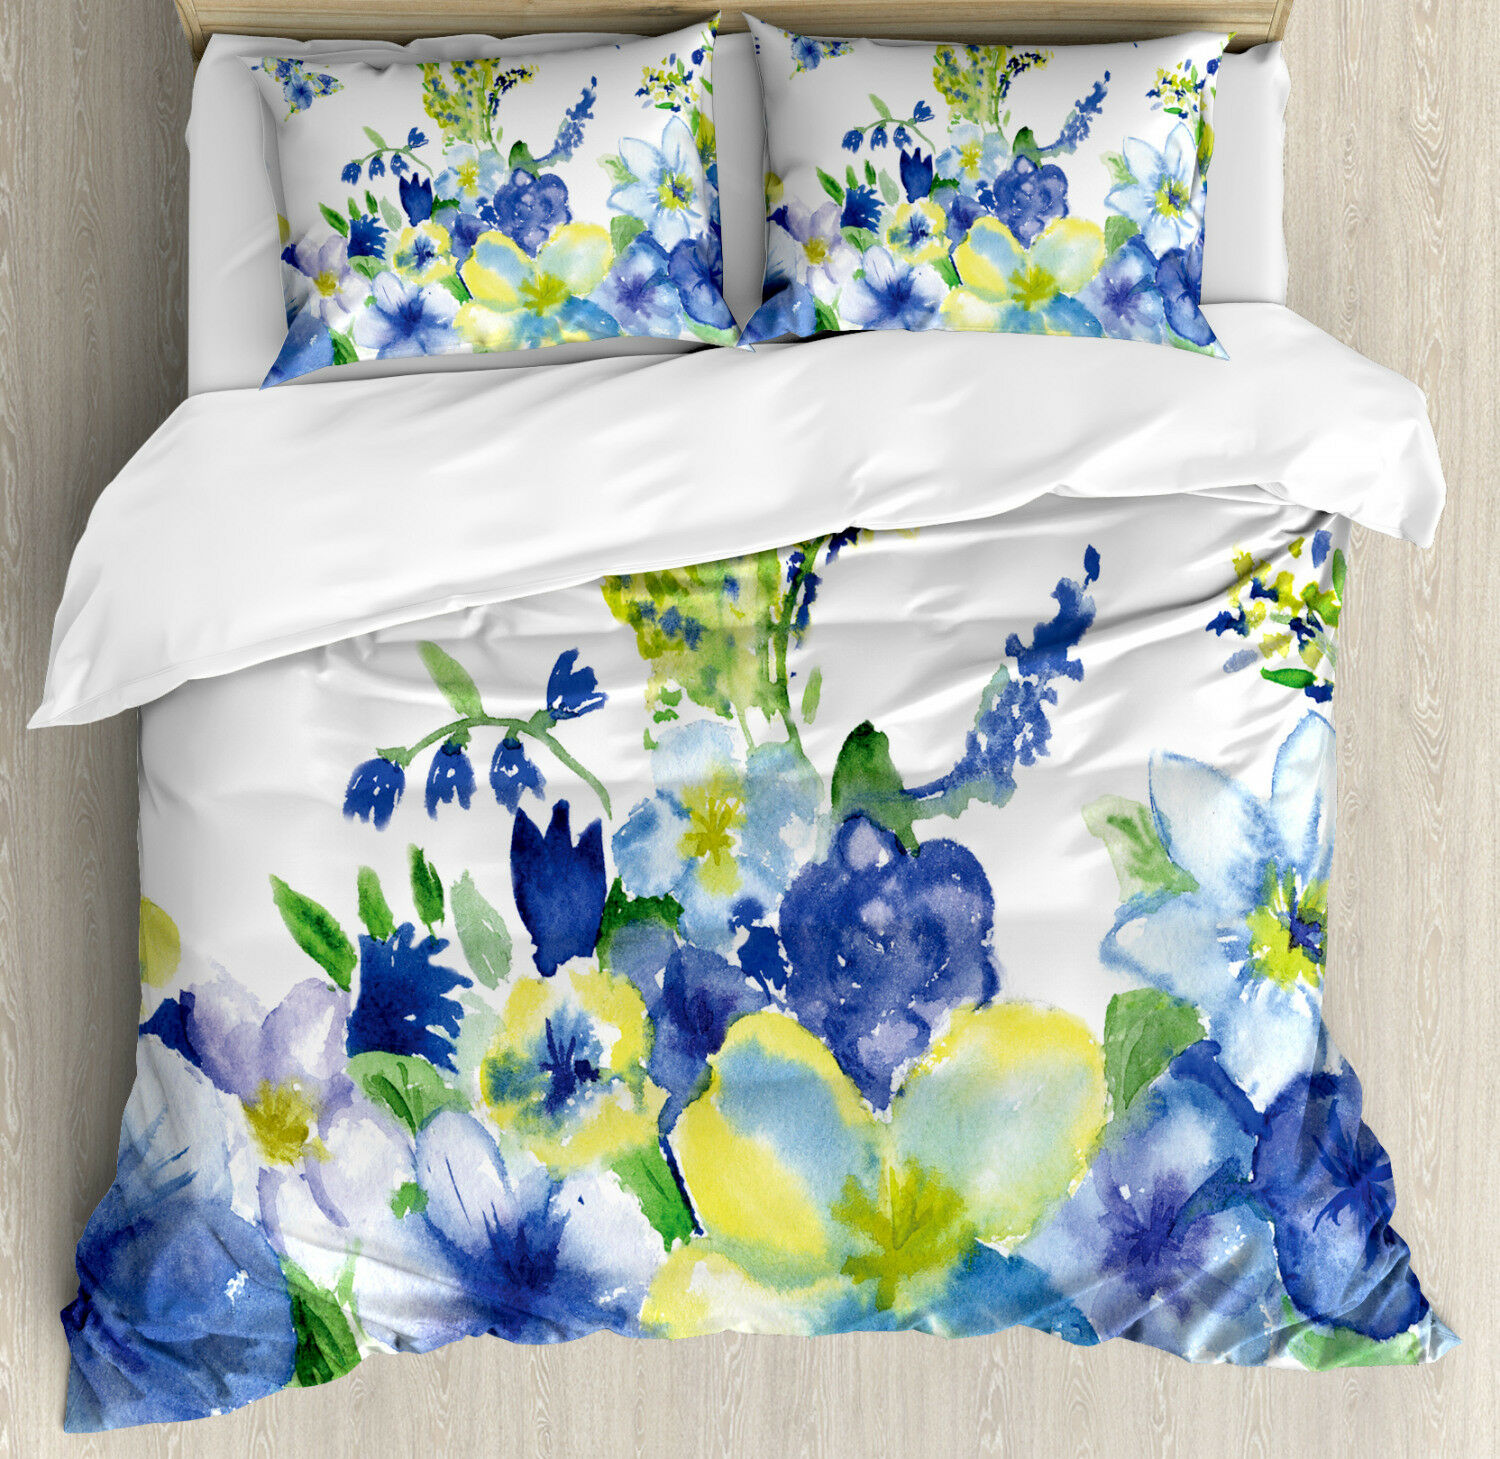 giallo and blu Duvet Cover Set with Pillow Shams Spring Blooms Print